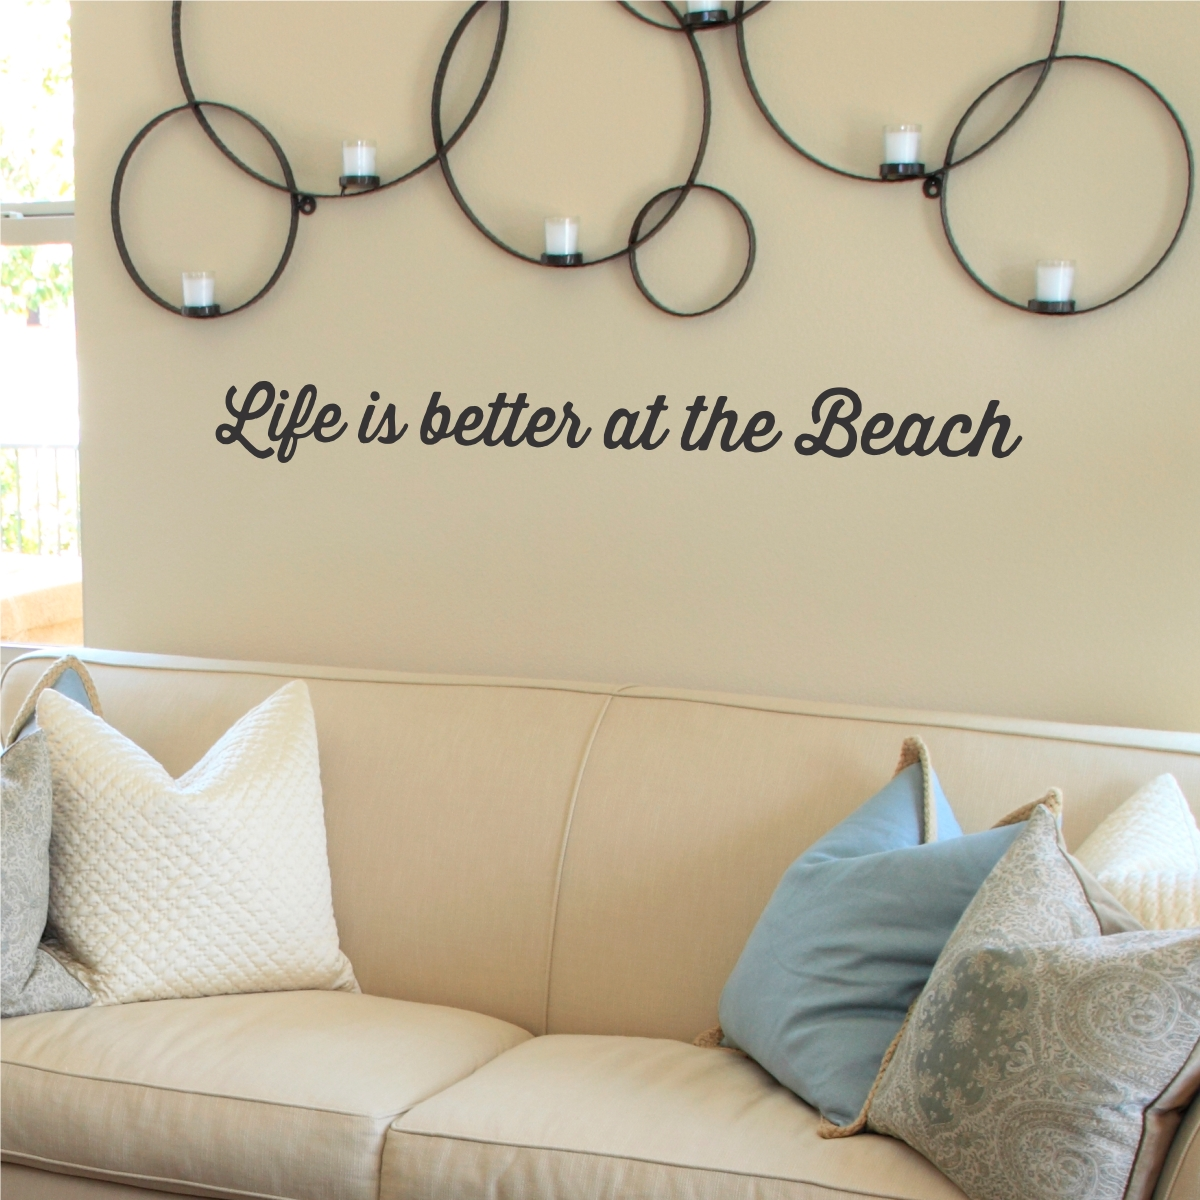 10 Beach House Decor Ideas: 20 Best Ideas Beach Theme Wall Art